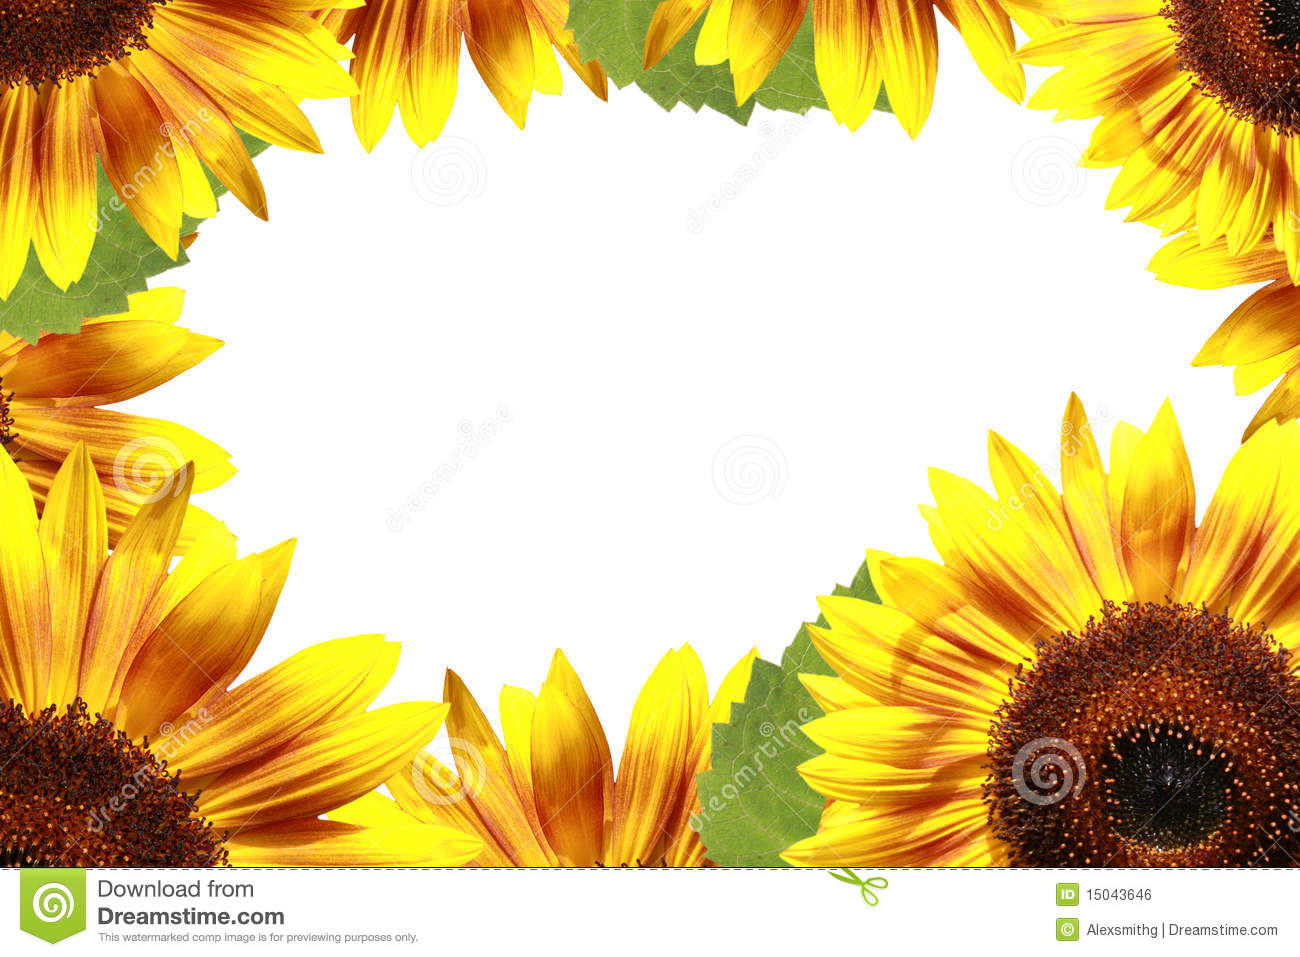 3d Sunflower Wallpaper Sunflower Frame Royalty Free Stock Image Image 15043646